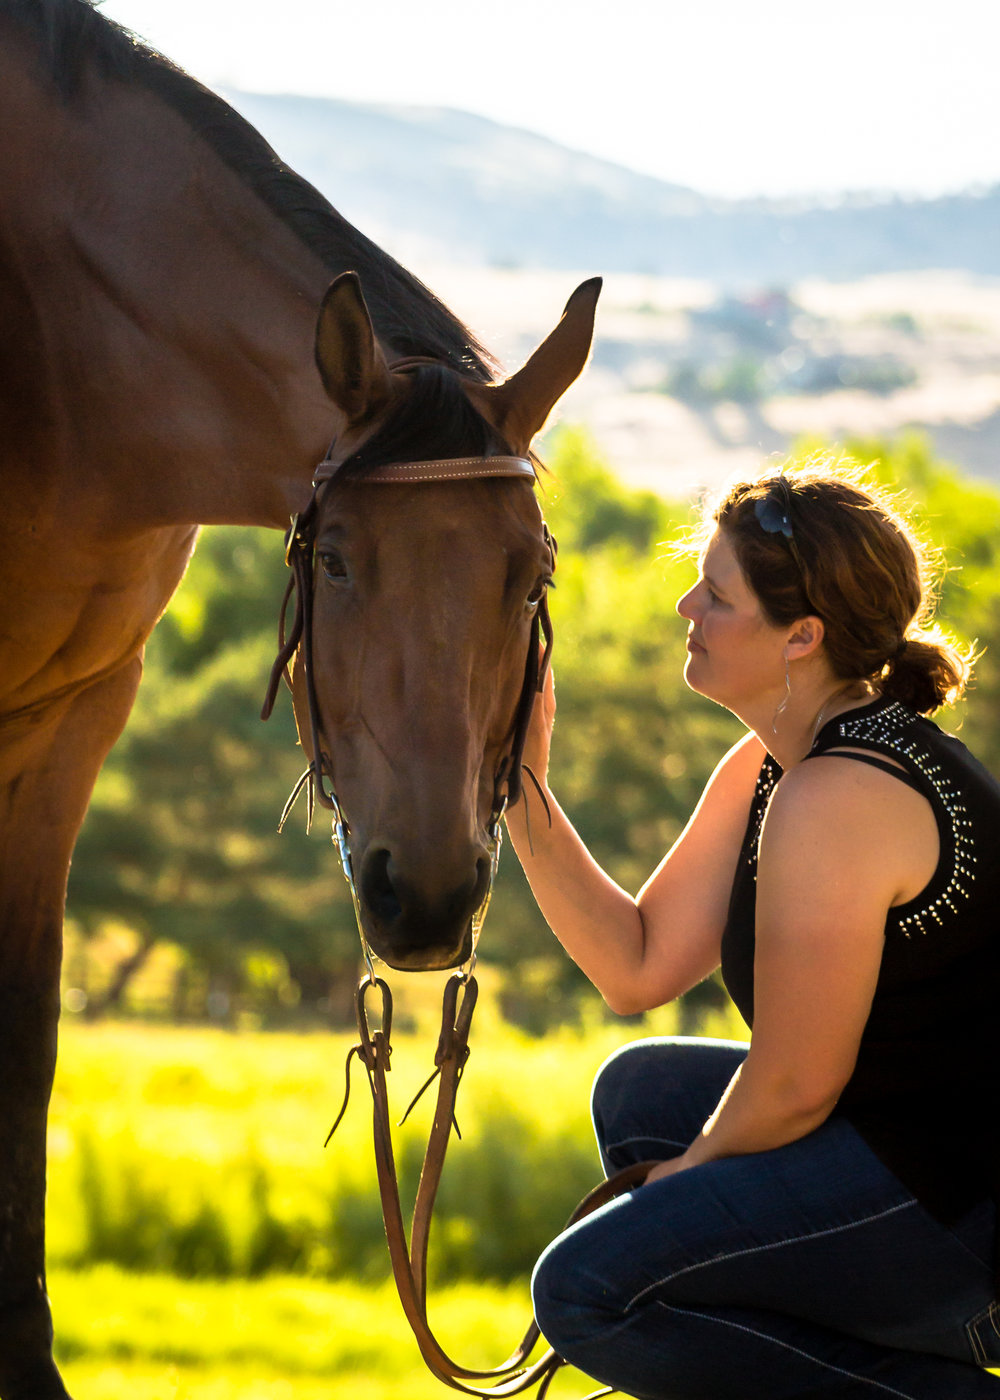 Create Memories by Anett - Equine Photographer